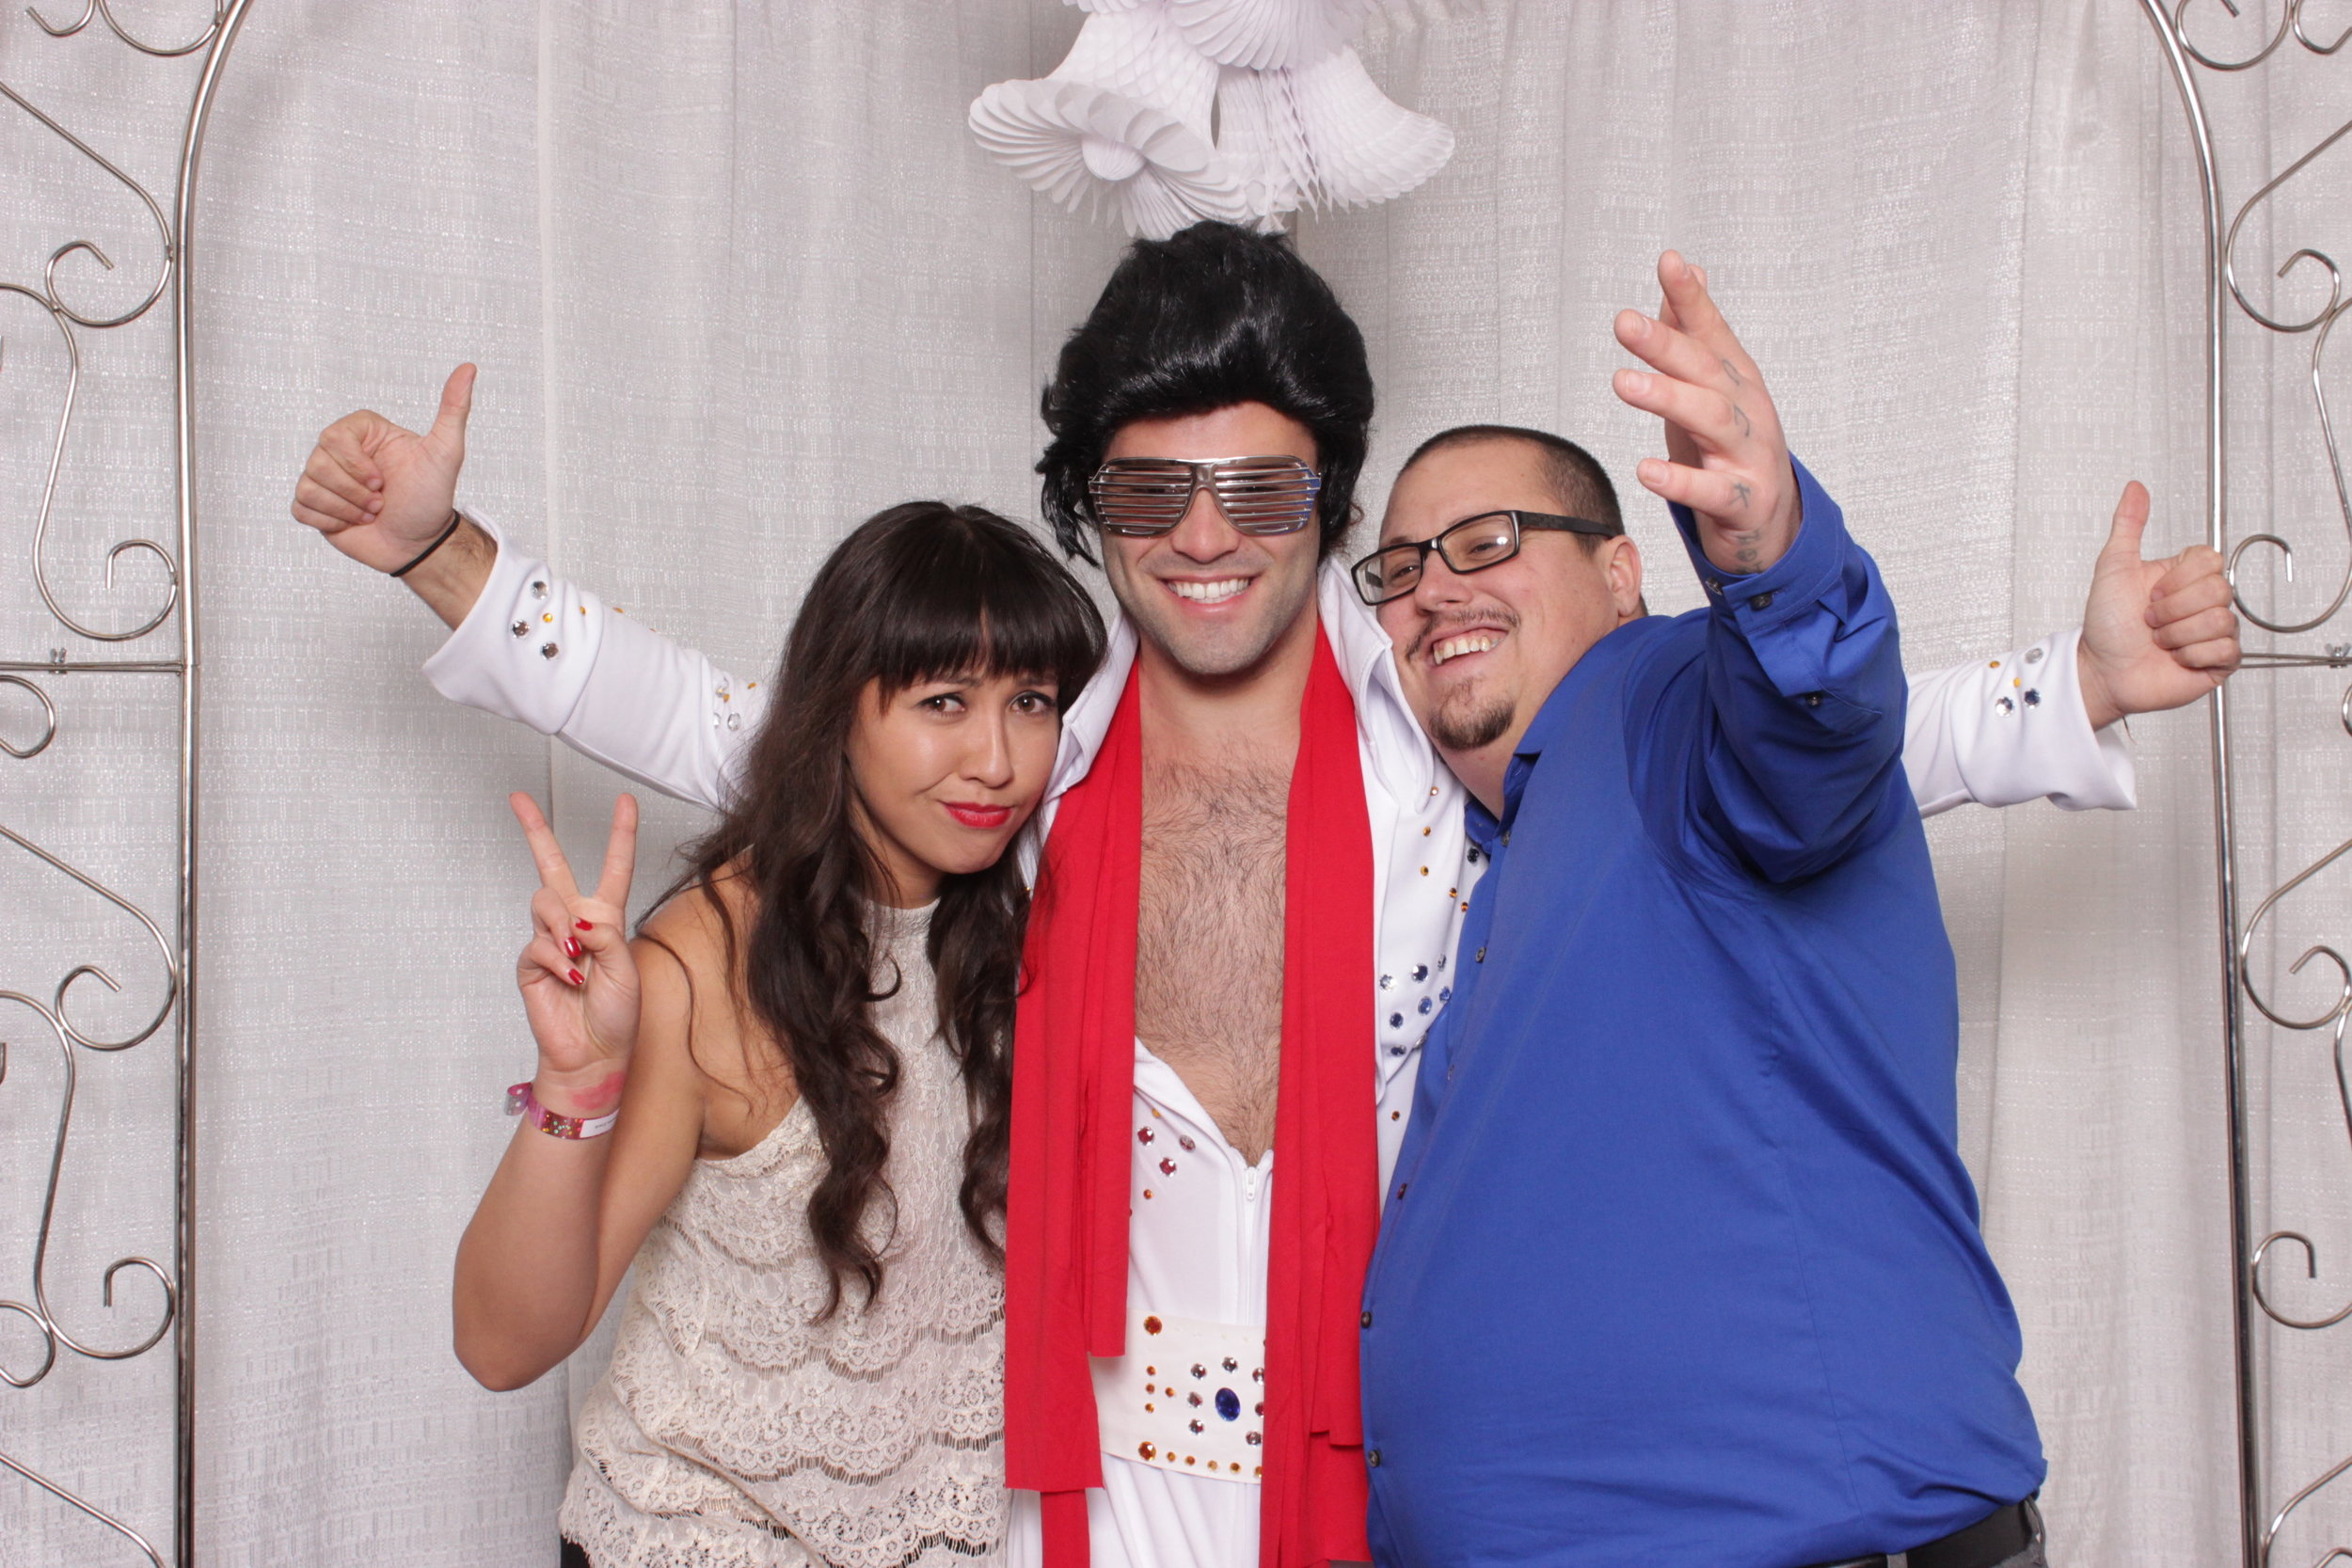 Chico-photo-booth-rental-expert